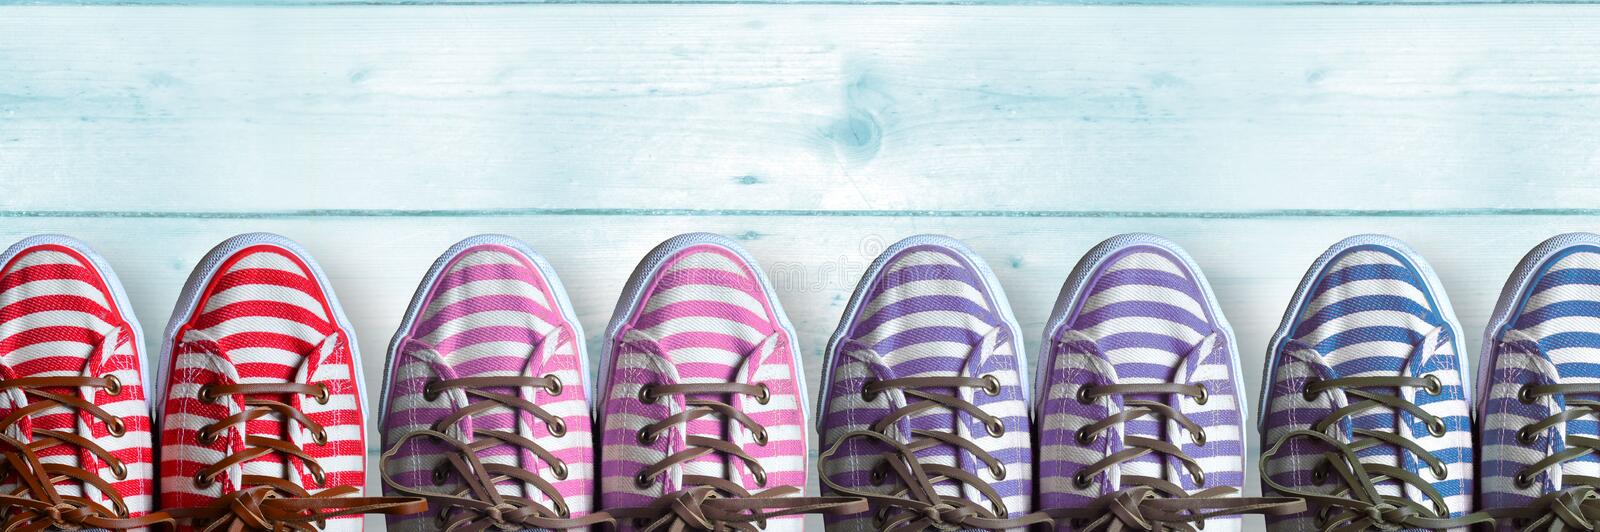 Group of colorful shoes royalty free stock photography